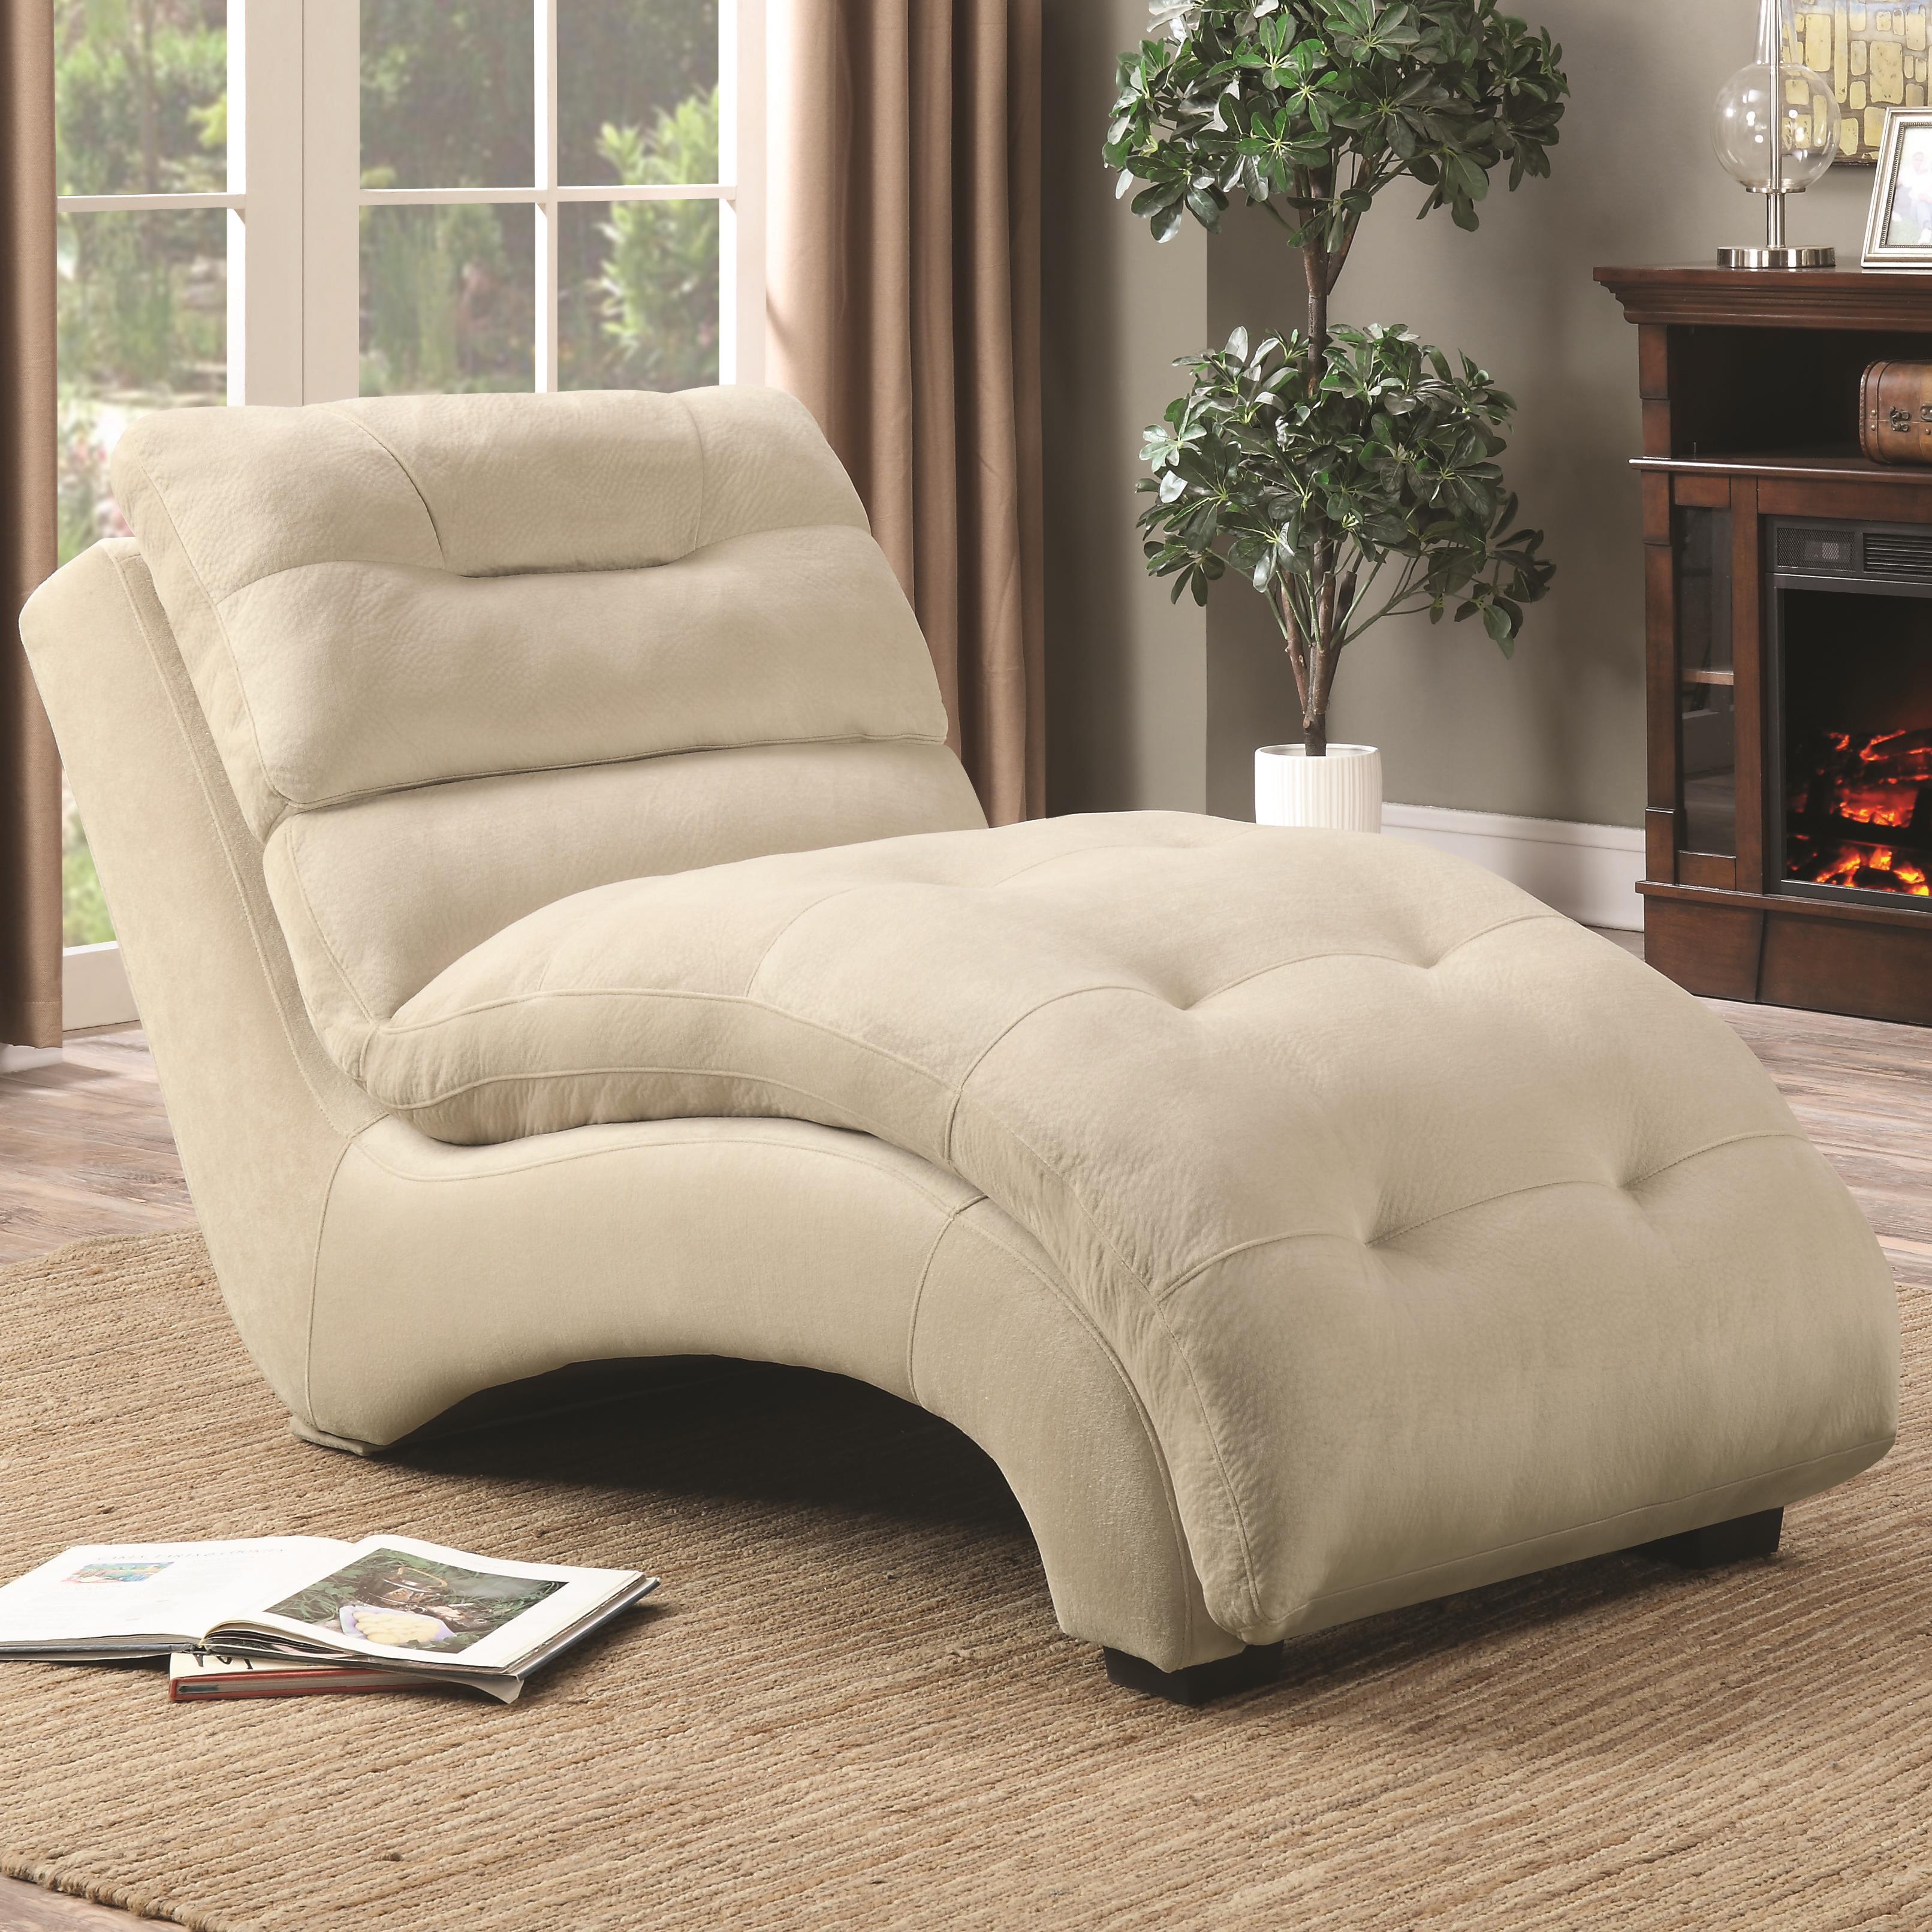 Coaster Accent Seating Chaise - Item Number: 550347